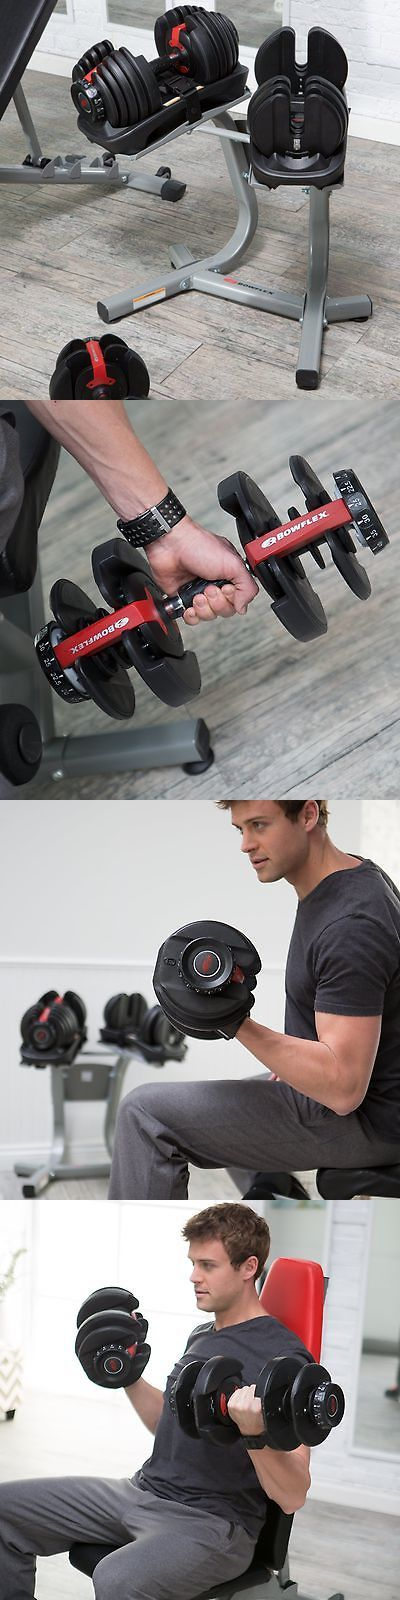 Home Gyms 158923: Bowflex Selecttech 552 Adjustable Dumbbell Set - 5-52 Lbs. -> BUY IT NOW ONLY: $299 on eBay!